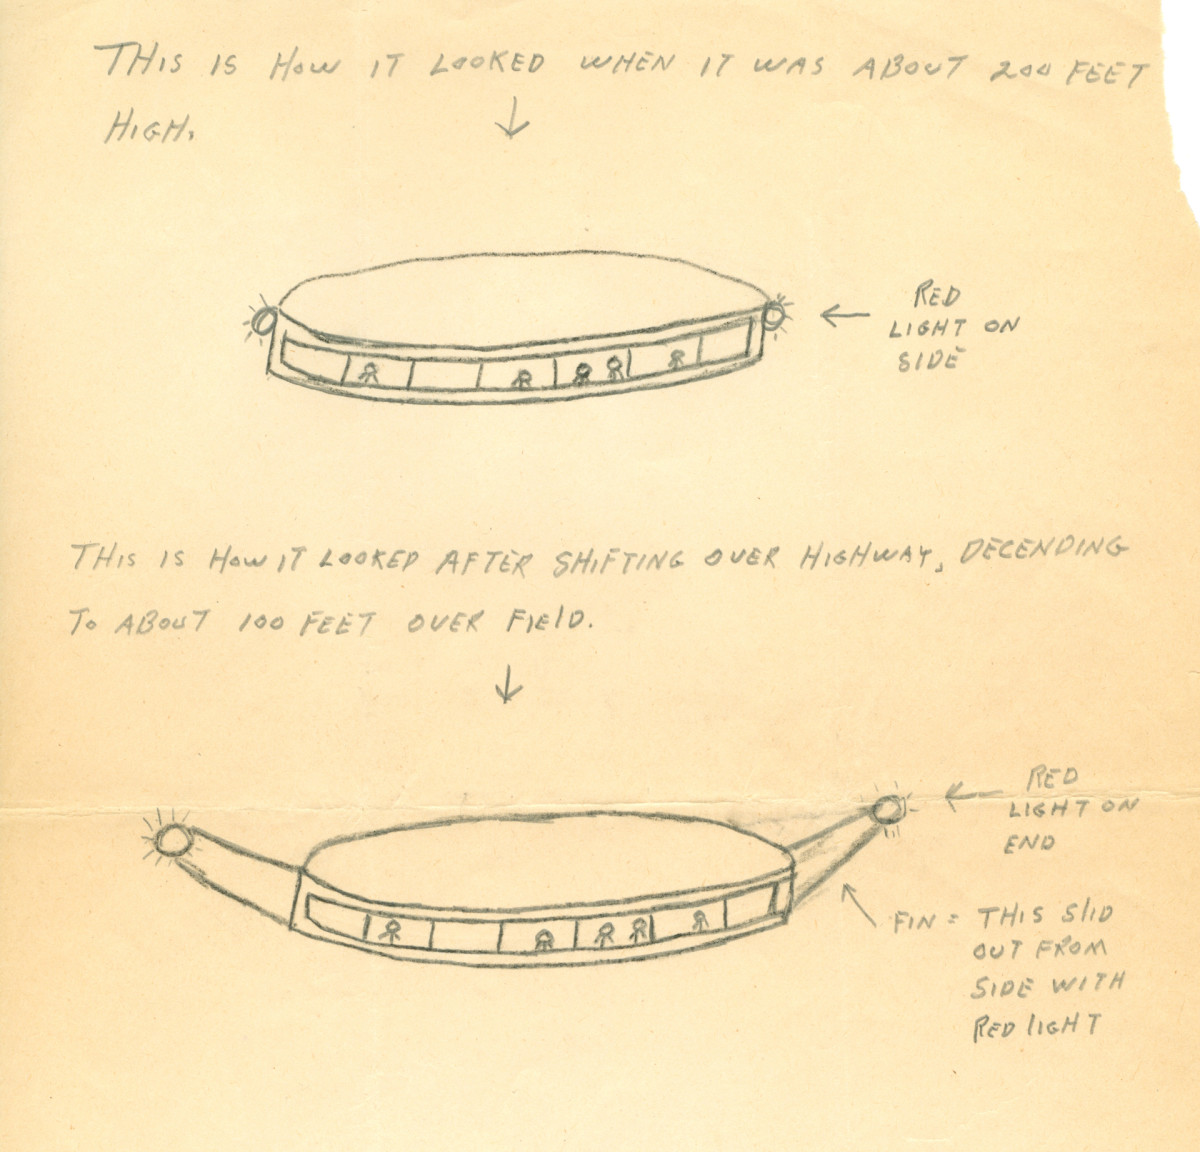 Image depicting an alien space ship, at 200 feet and 100 feet above the Earth's surface, drawn by alleged alien abductee Betty Hill and regarded as one of the first examples of the Flying Saucer alien spaceship archetype, September 20, 1961.